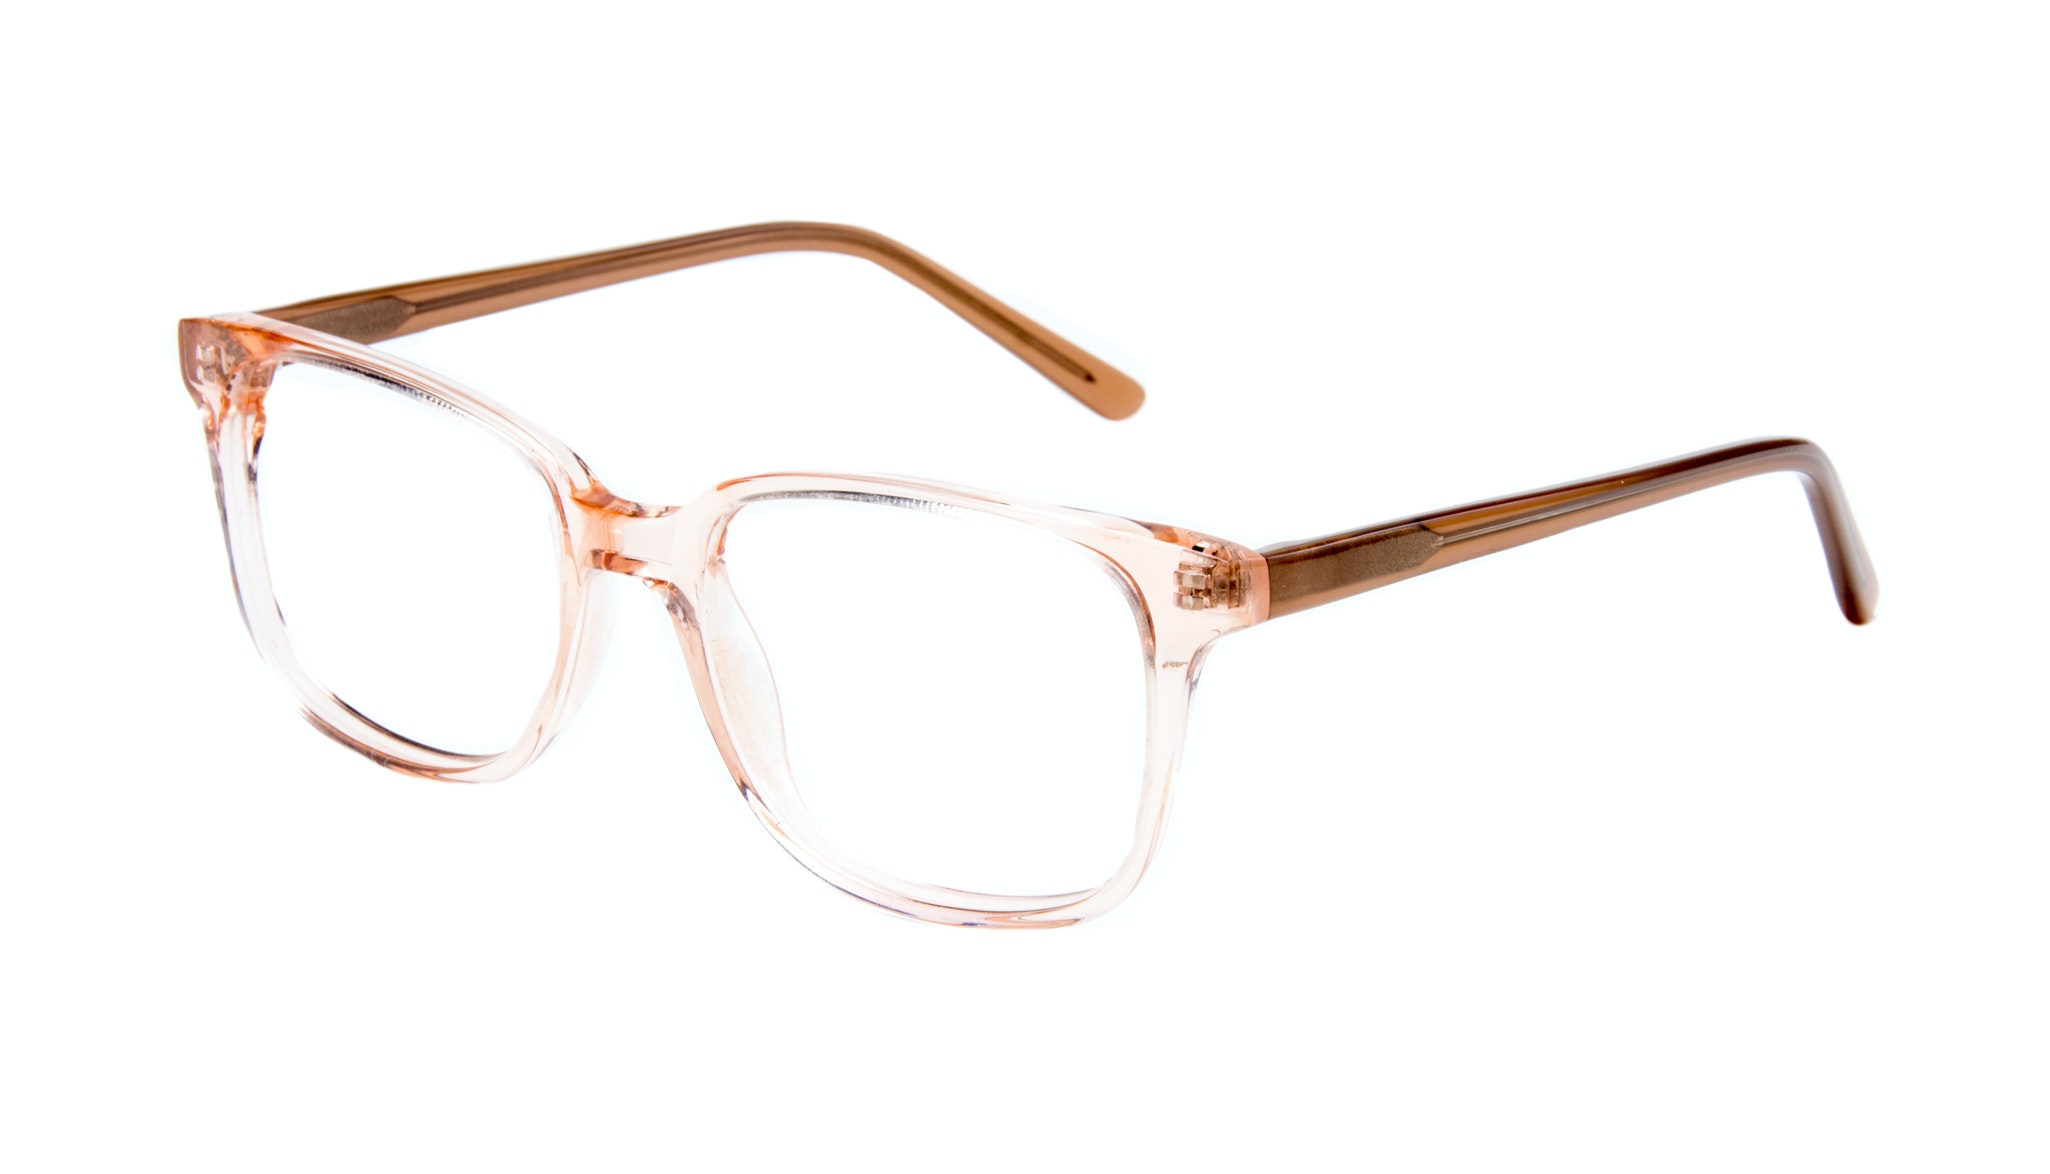 Affordable Fashion Glasses Rectangle Square Eyeglasses Women Windsor Pink Metal Tilt